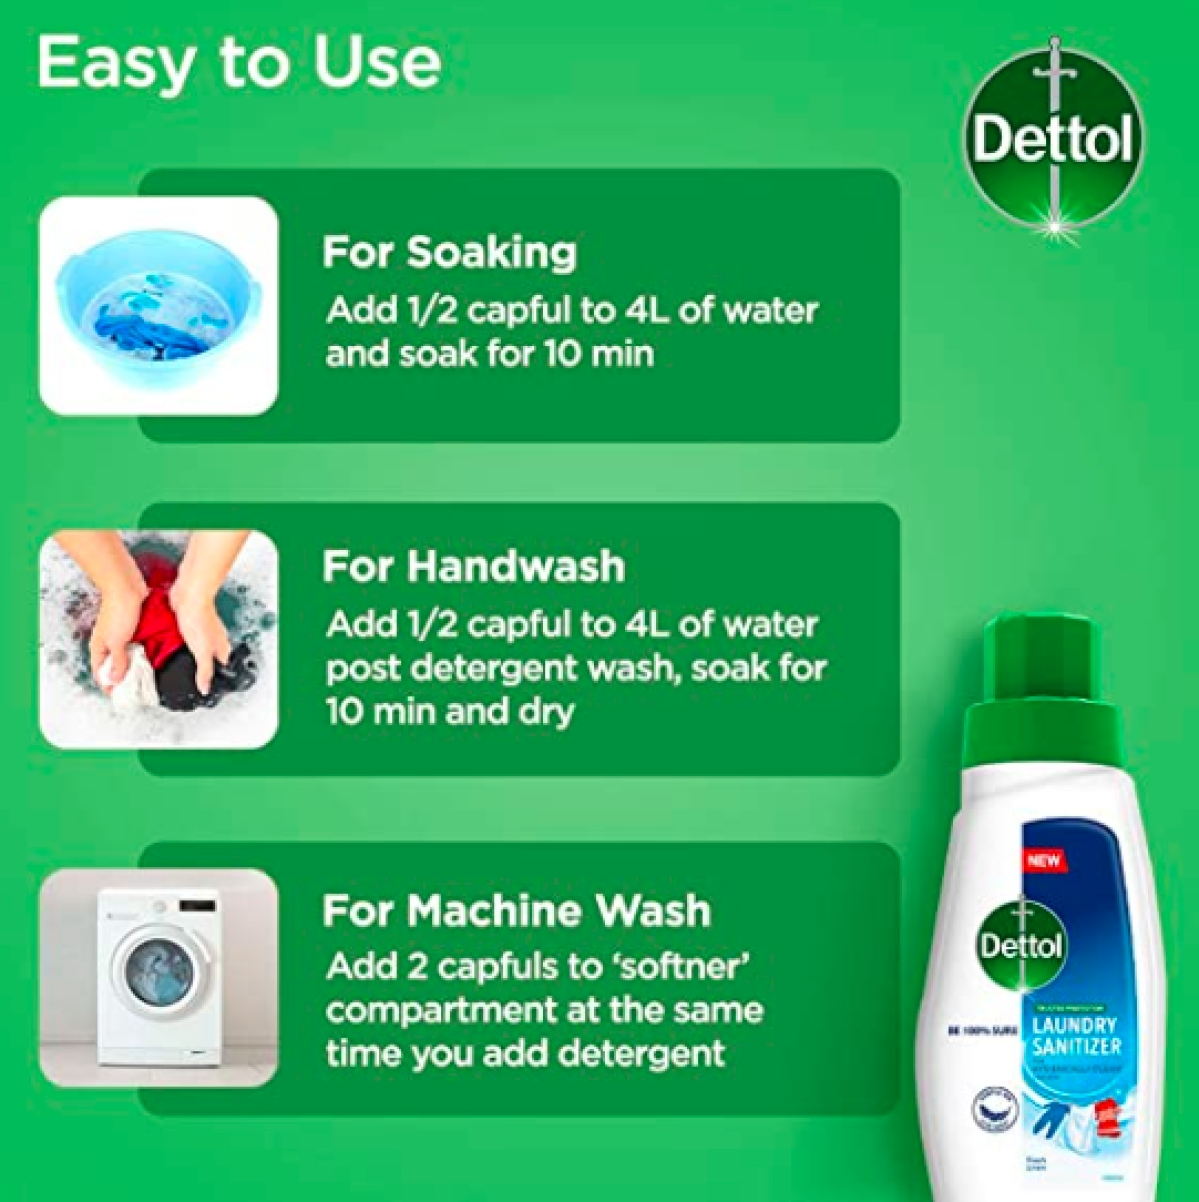 ITC out to simplify laundry routine with Savlon 'clothes spray' that kills germs.